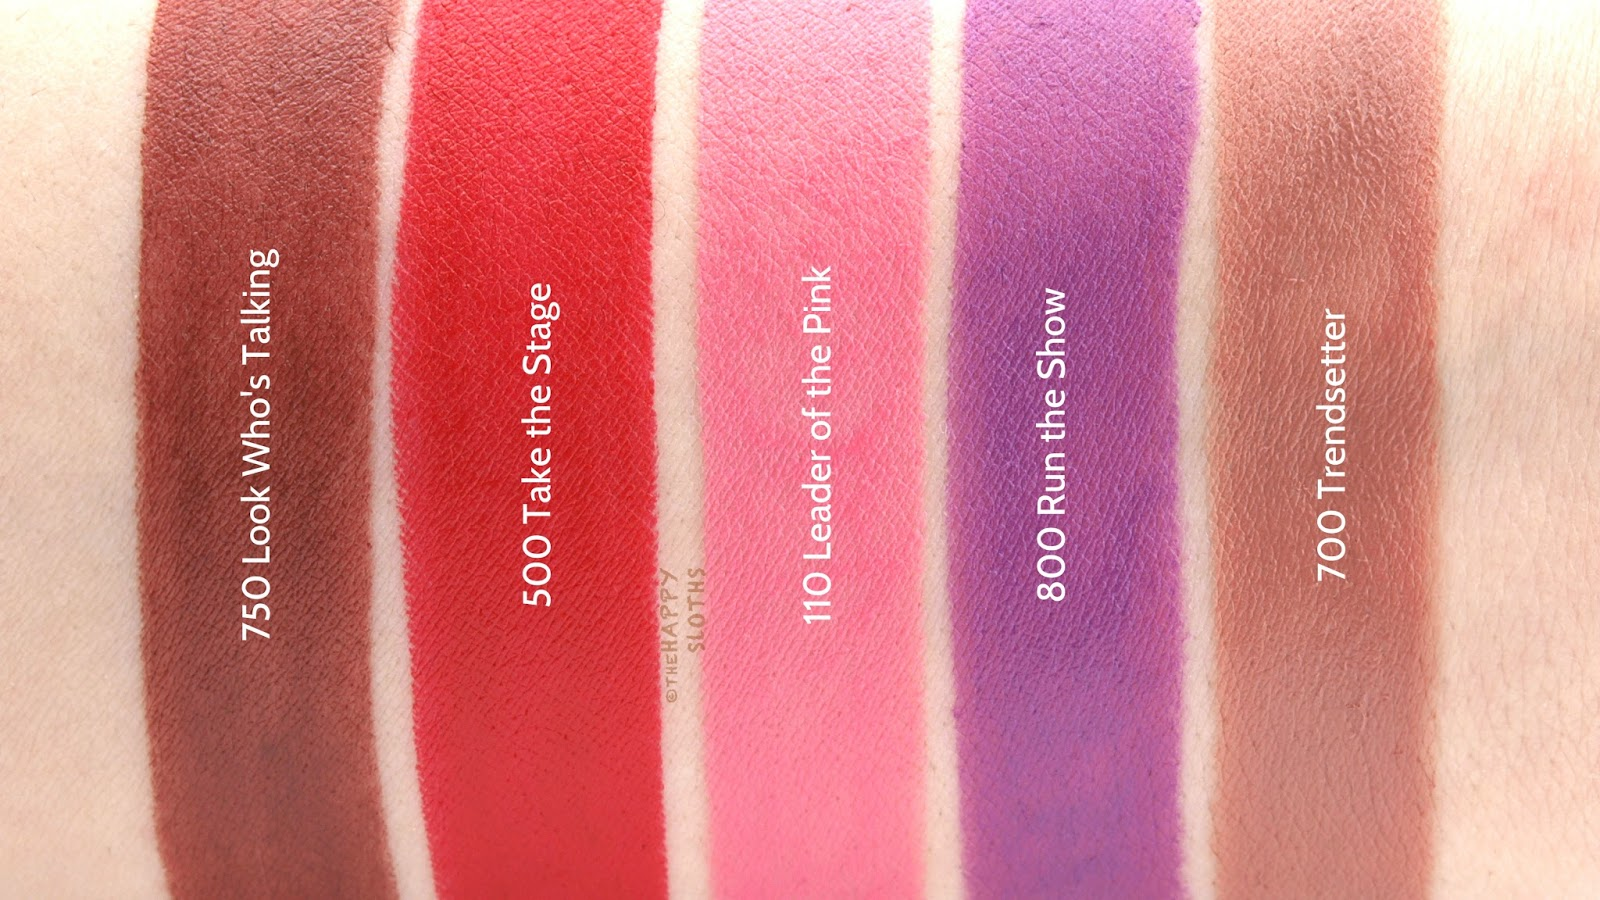 Rimmel London The Only 1 Matte Lipstick: Review and Swatches | The ...